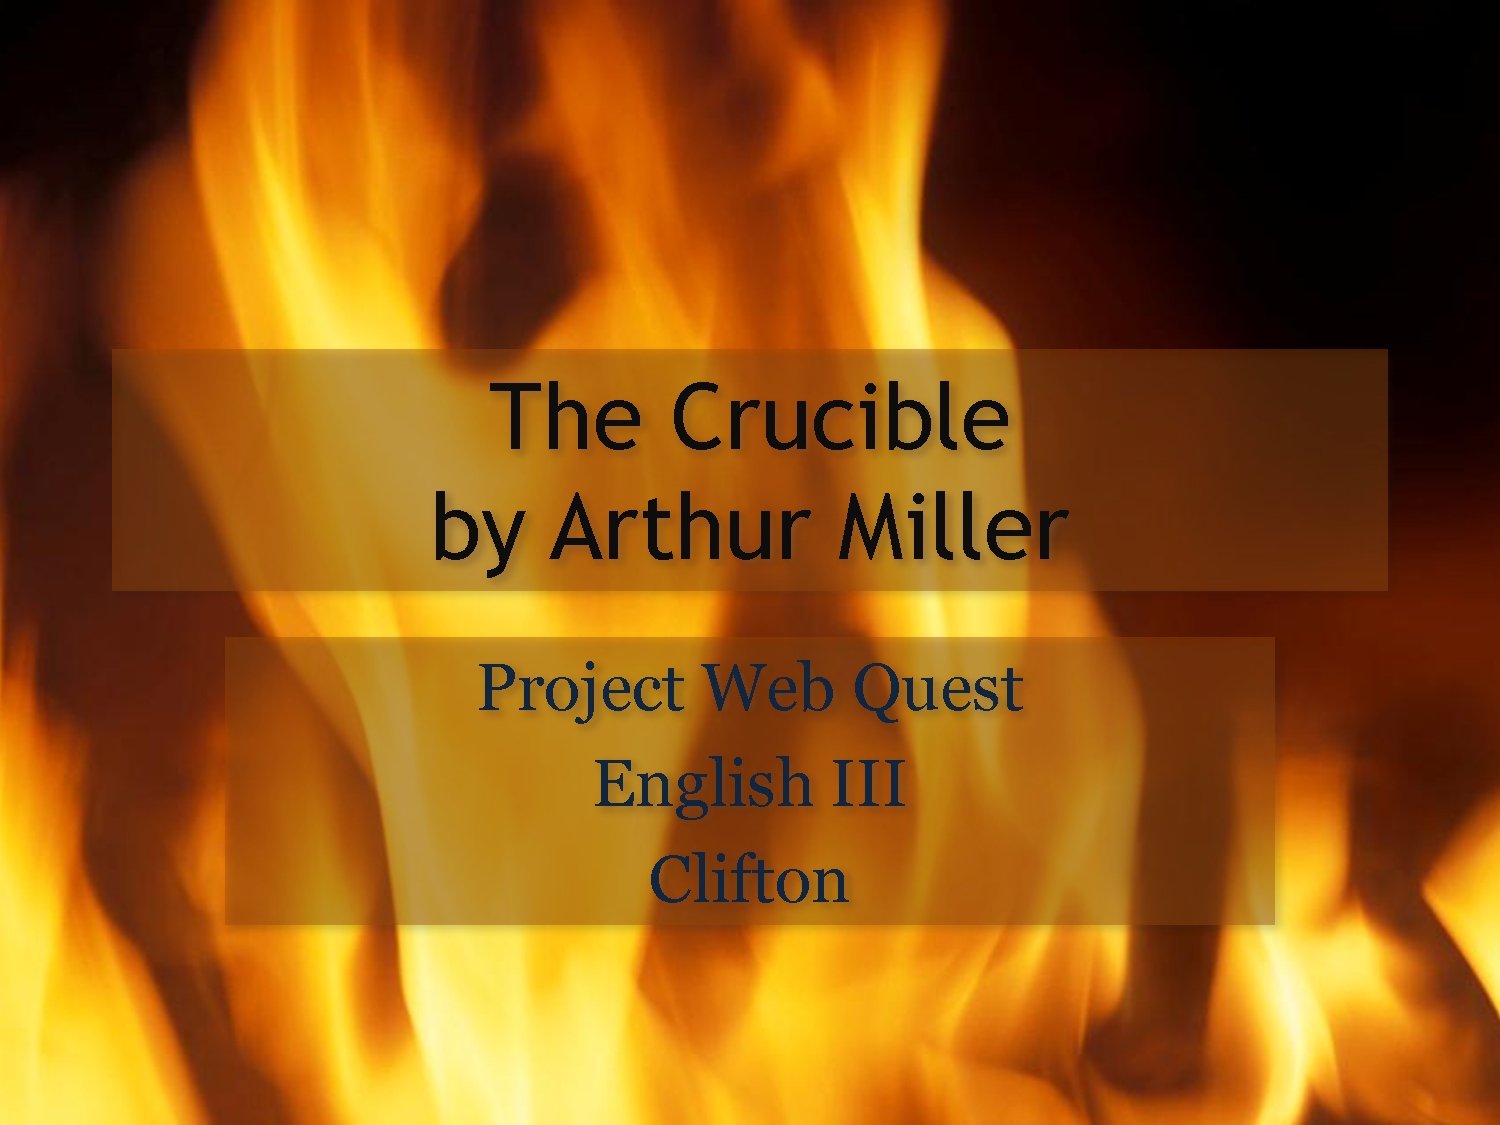 thesis of the crucible by arthur miller The crucible the crucible was a play written in 1953 by arthur miller his play depicted the time of the salem witch-hunts in which many innocent people were killed under the charge of heresy.